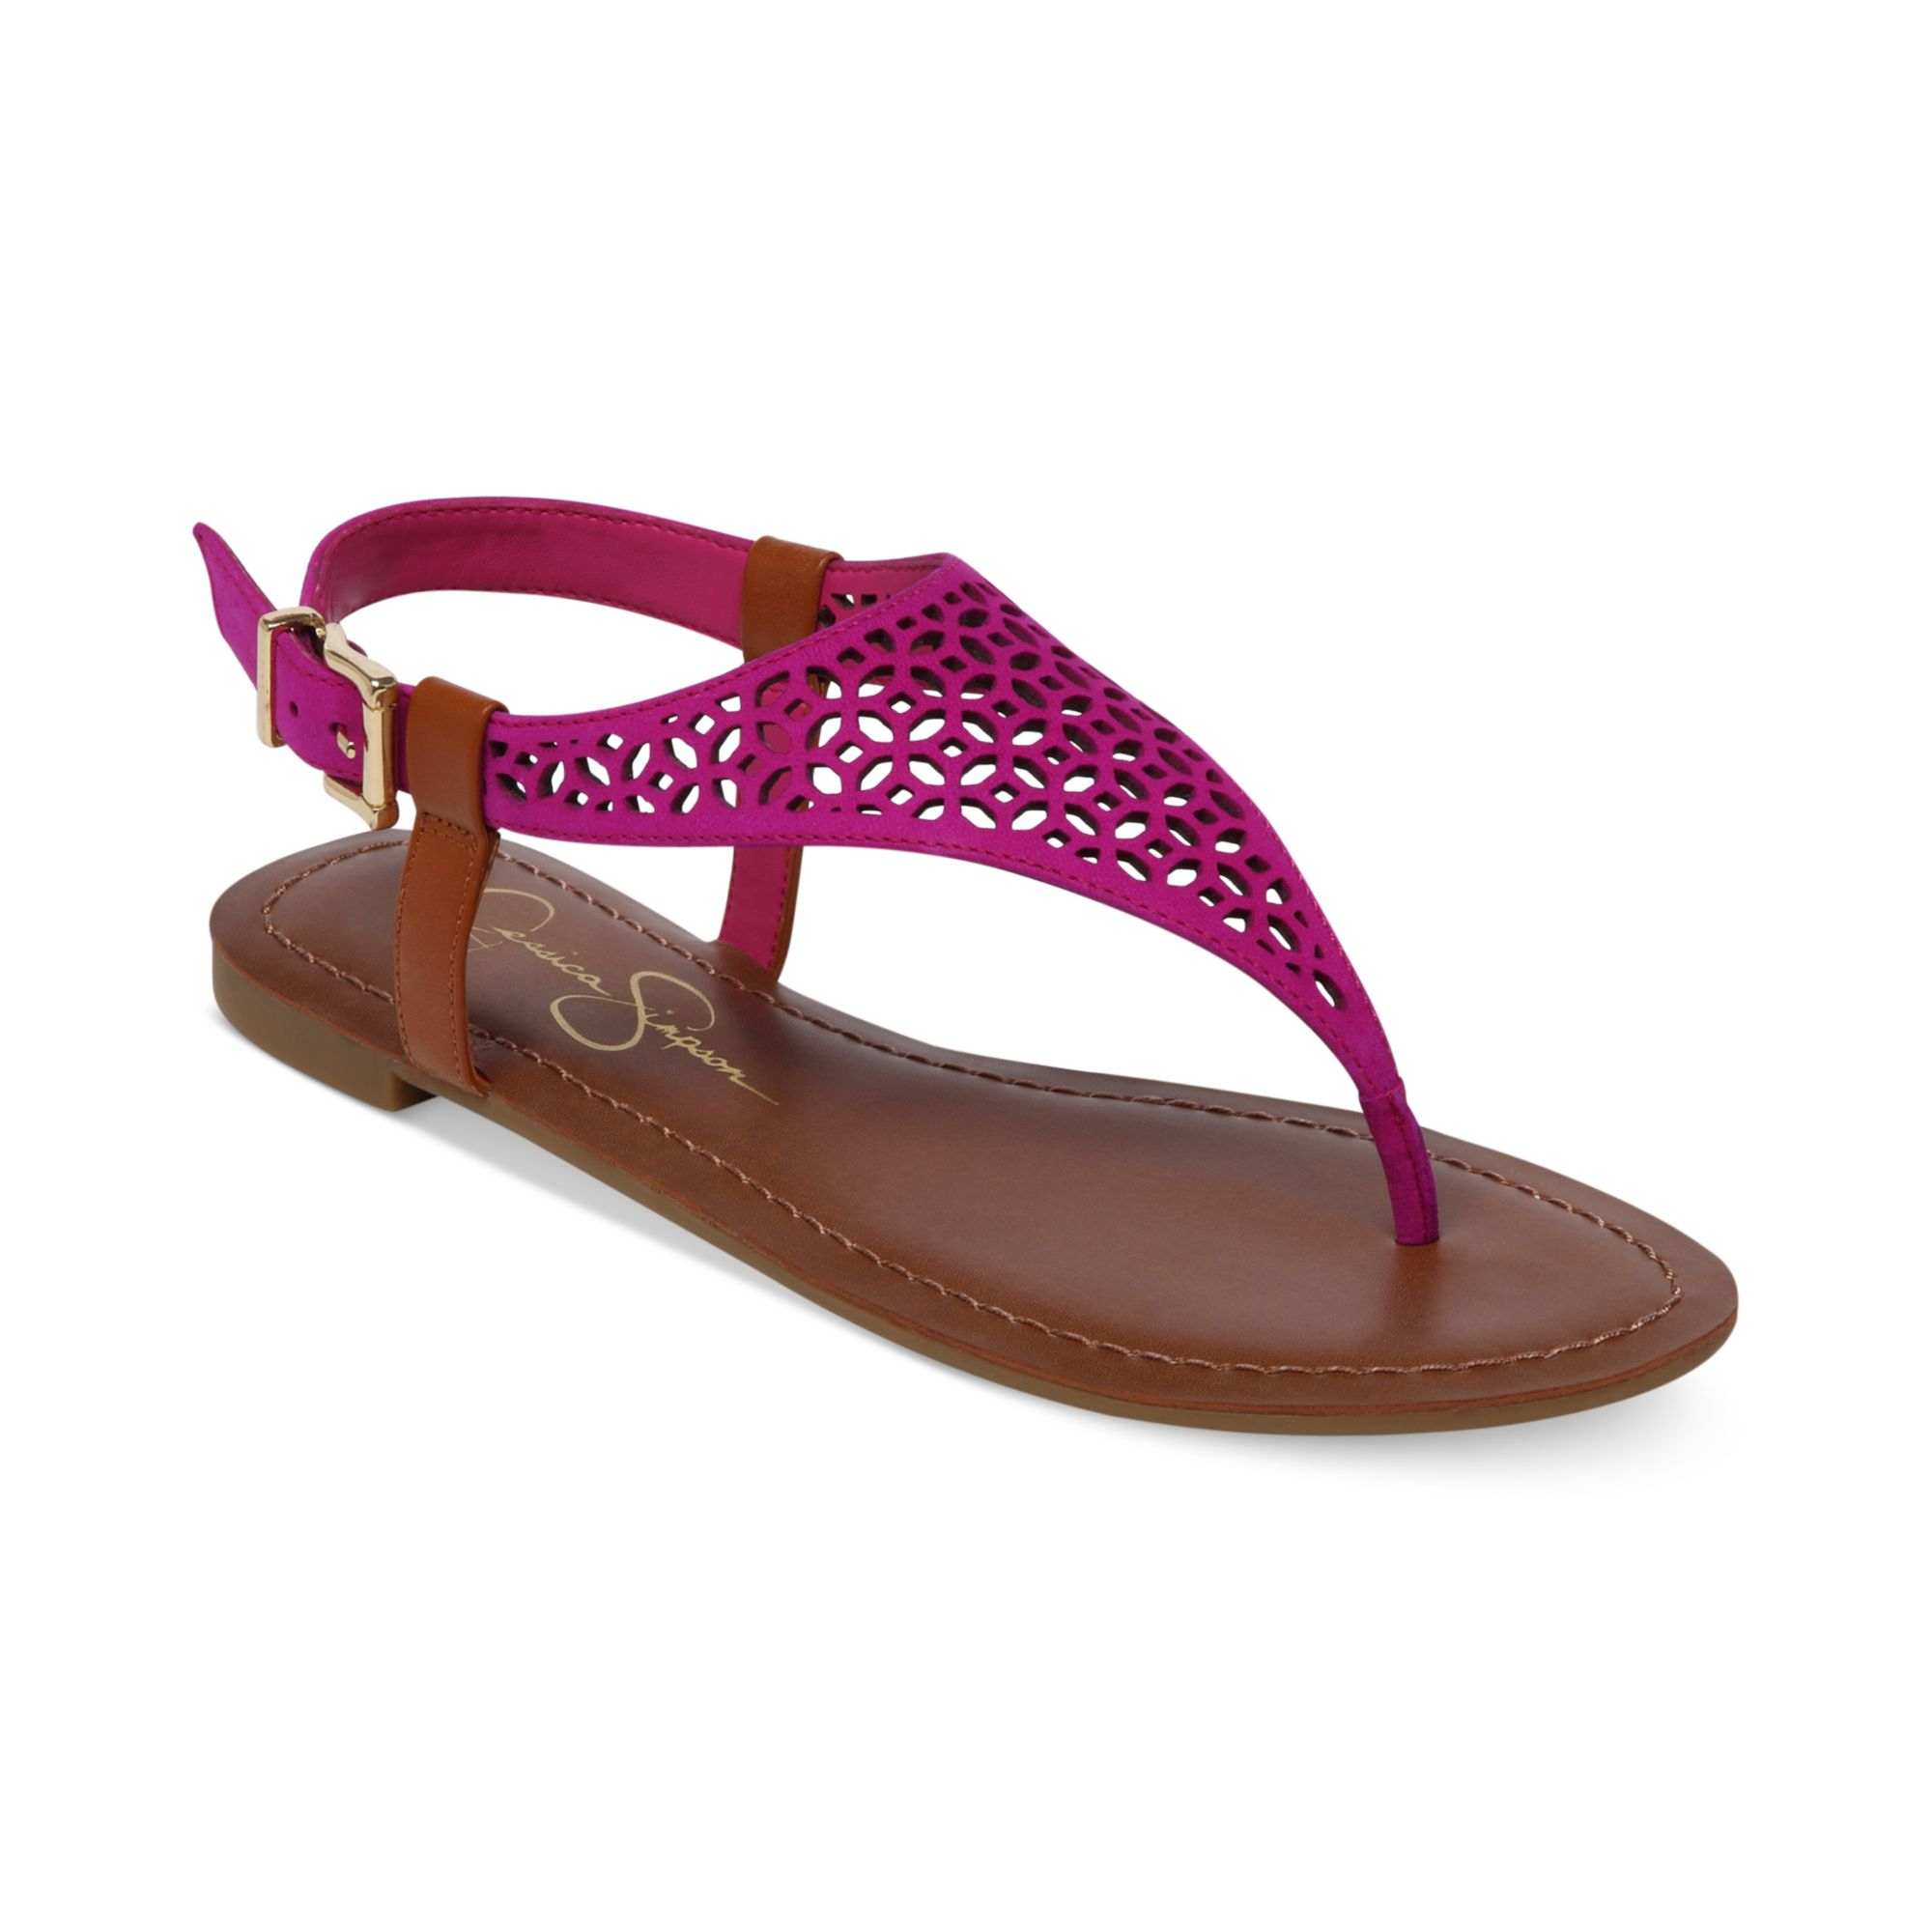 lyst - jessica simpson grile flat thong sandals in purple